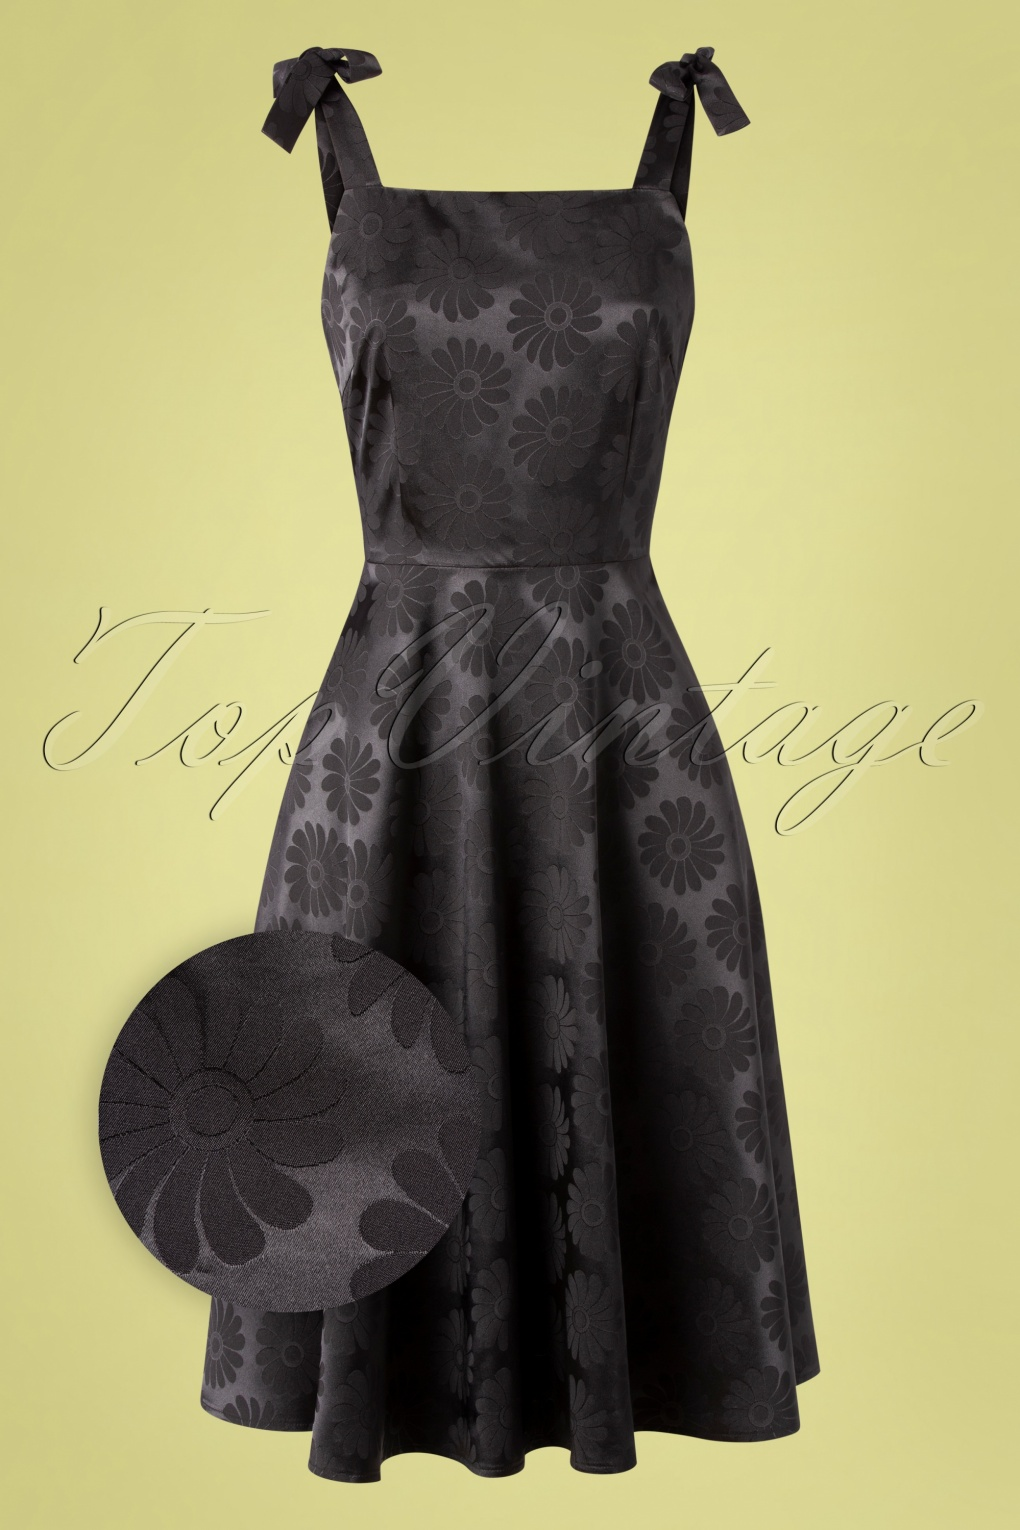 60s Dresses & 60s Style Dresses UK 50s Begonia Floral Skater Dress in Black £43.19 AT vintagedancer.com